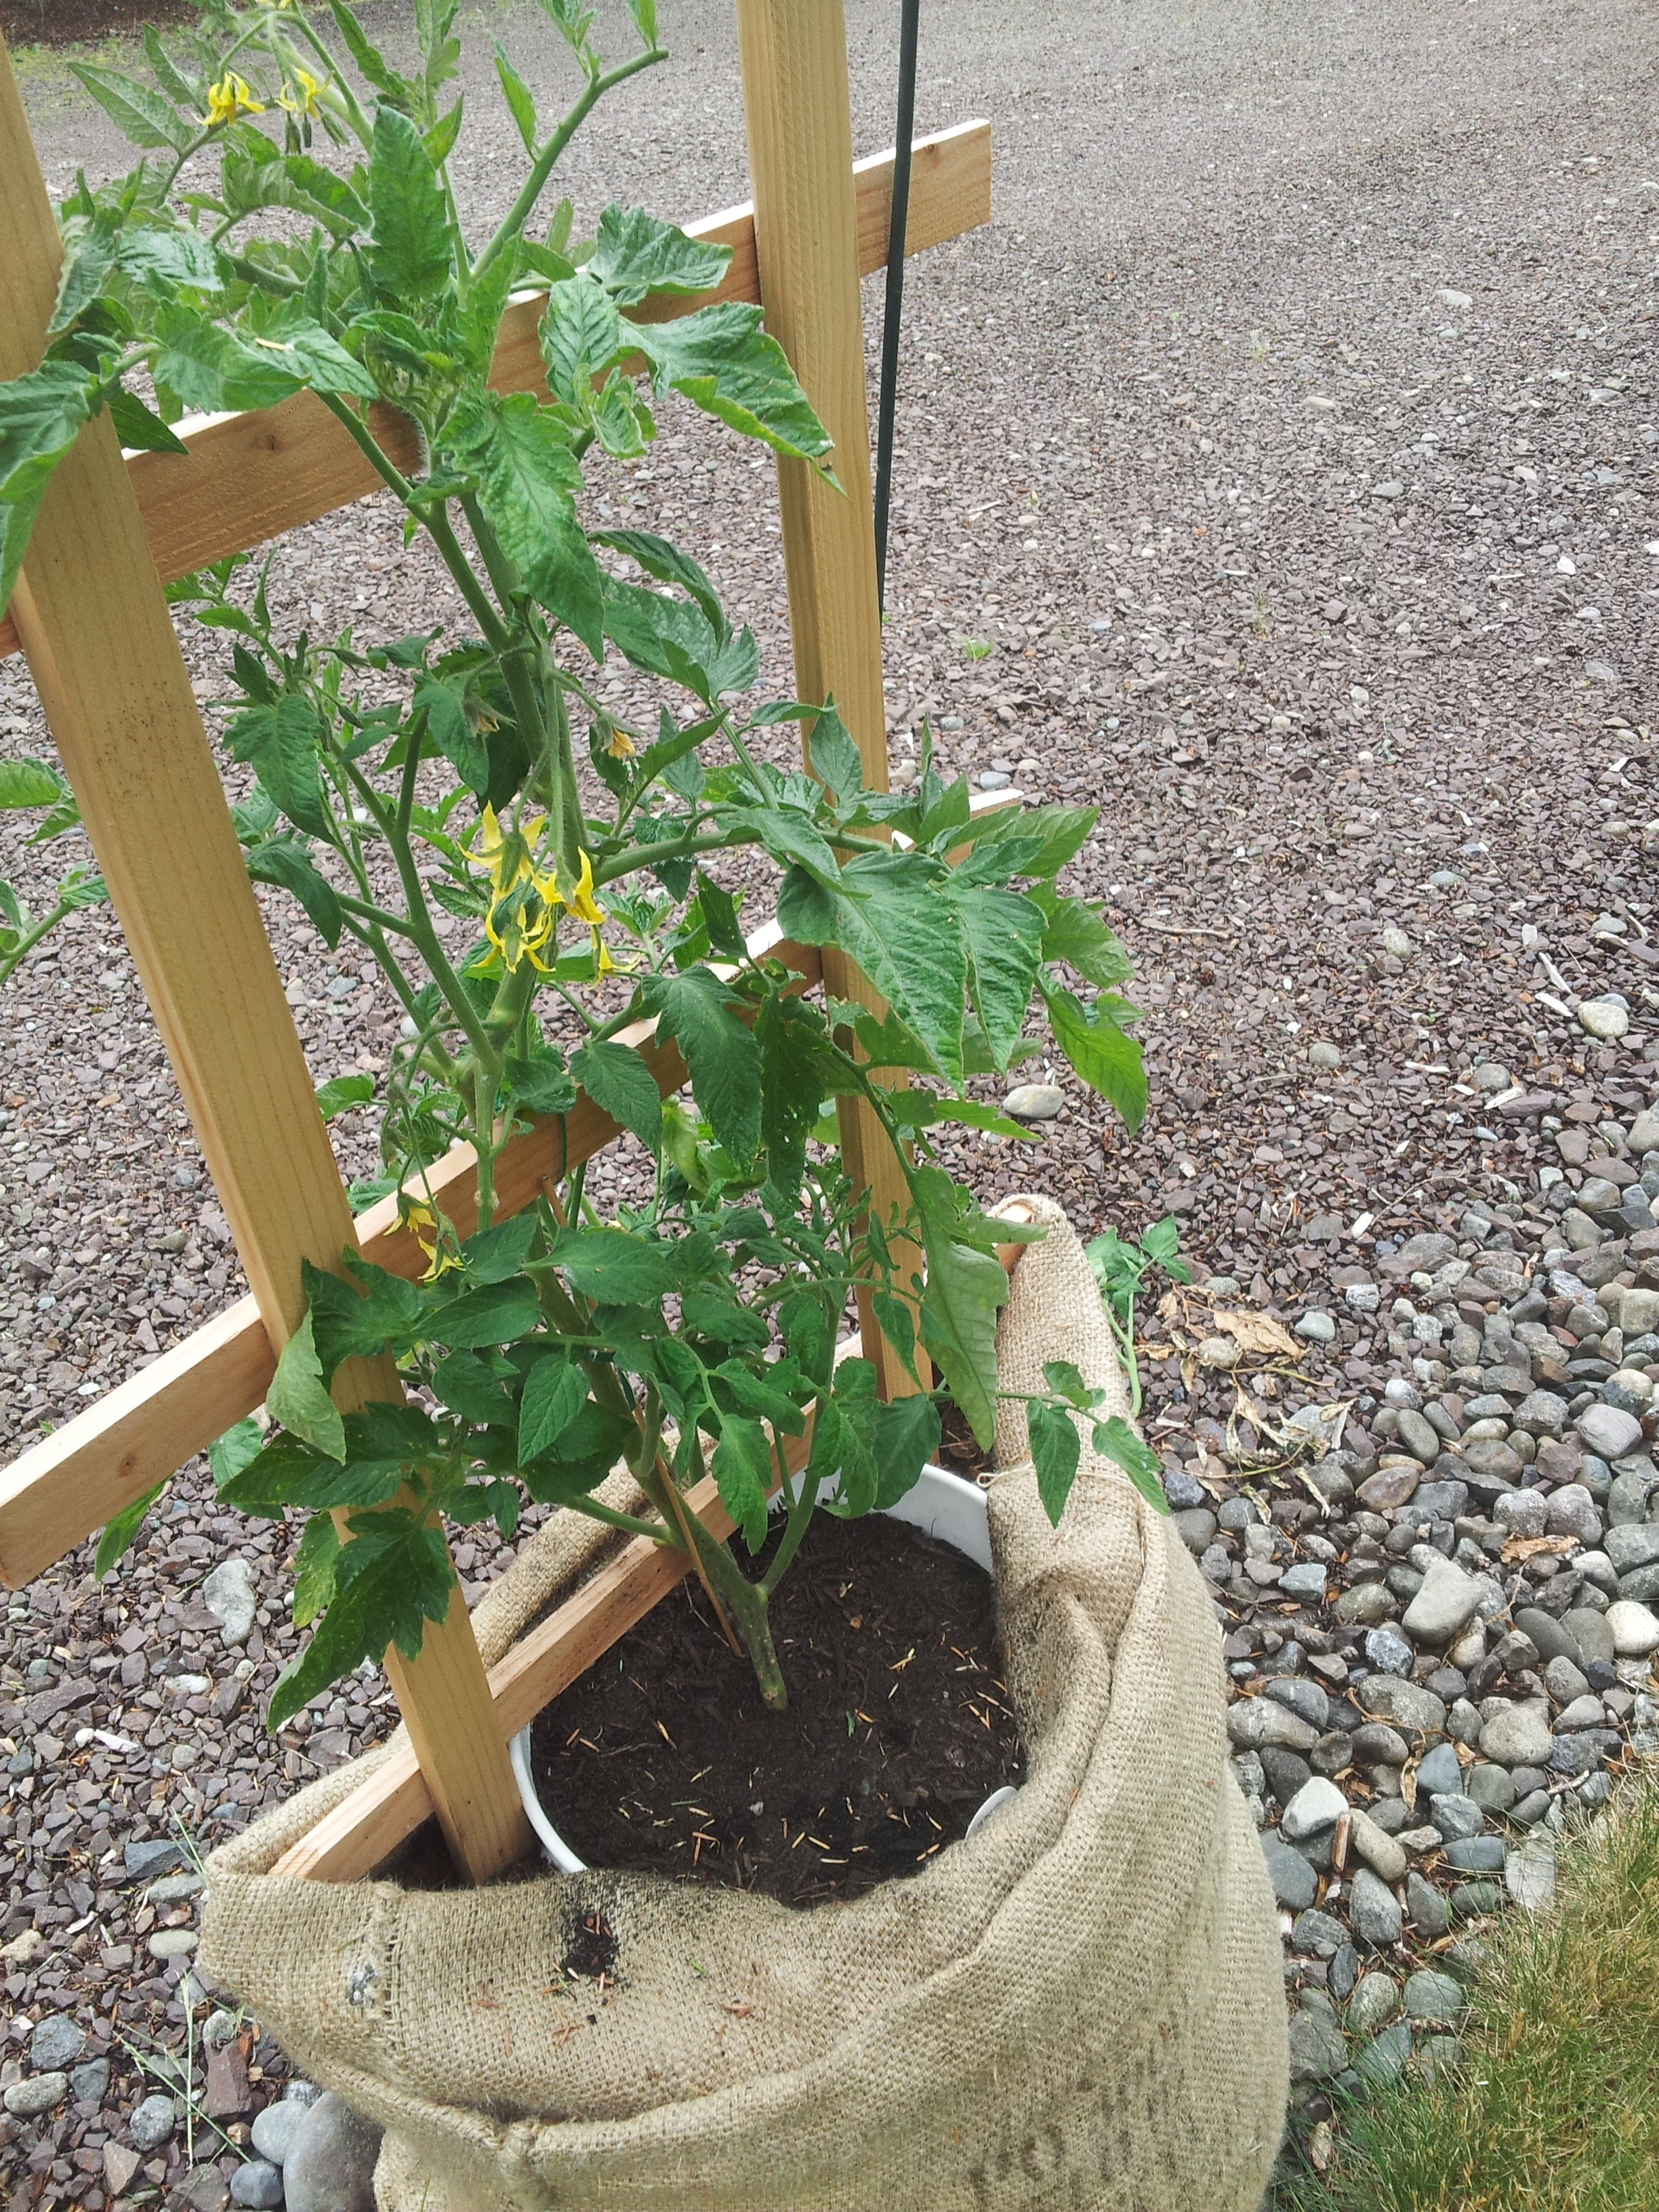 Growing Food In Burlap Sacks